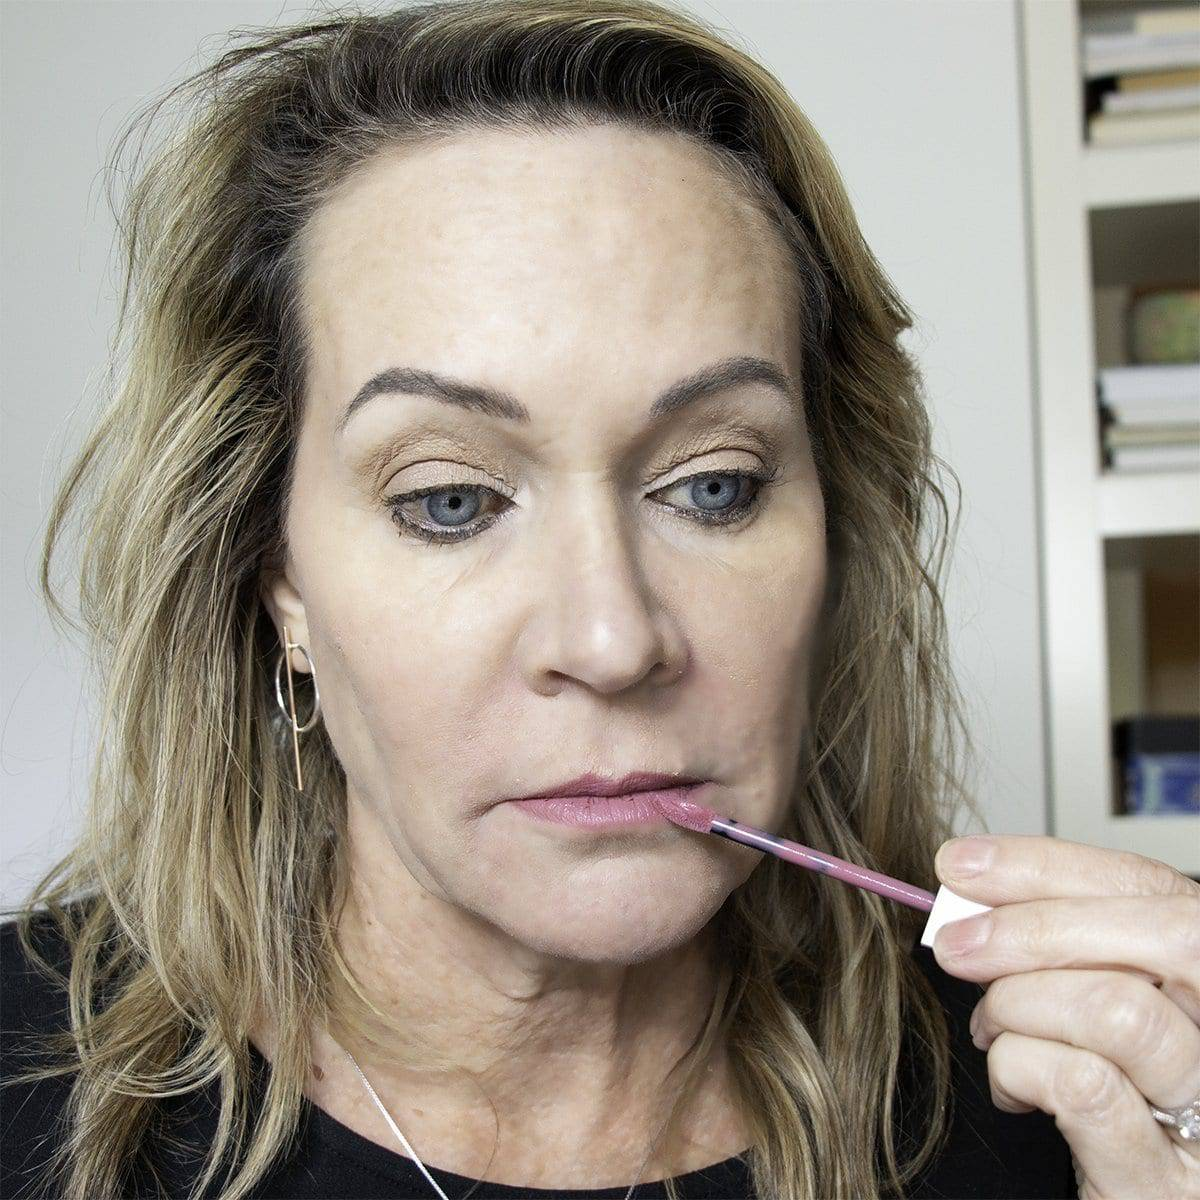 How to Stop Lipstick Bleeding into Lip Wrinkles and Smoker's Lines 13